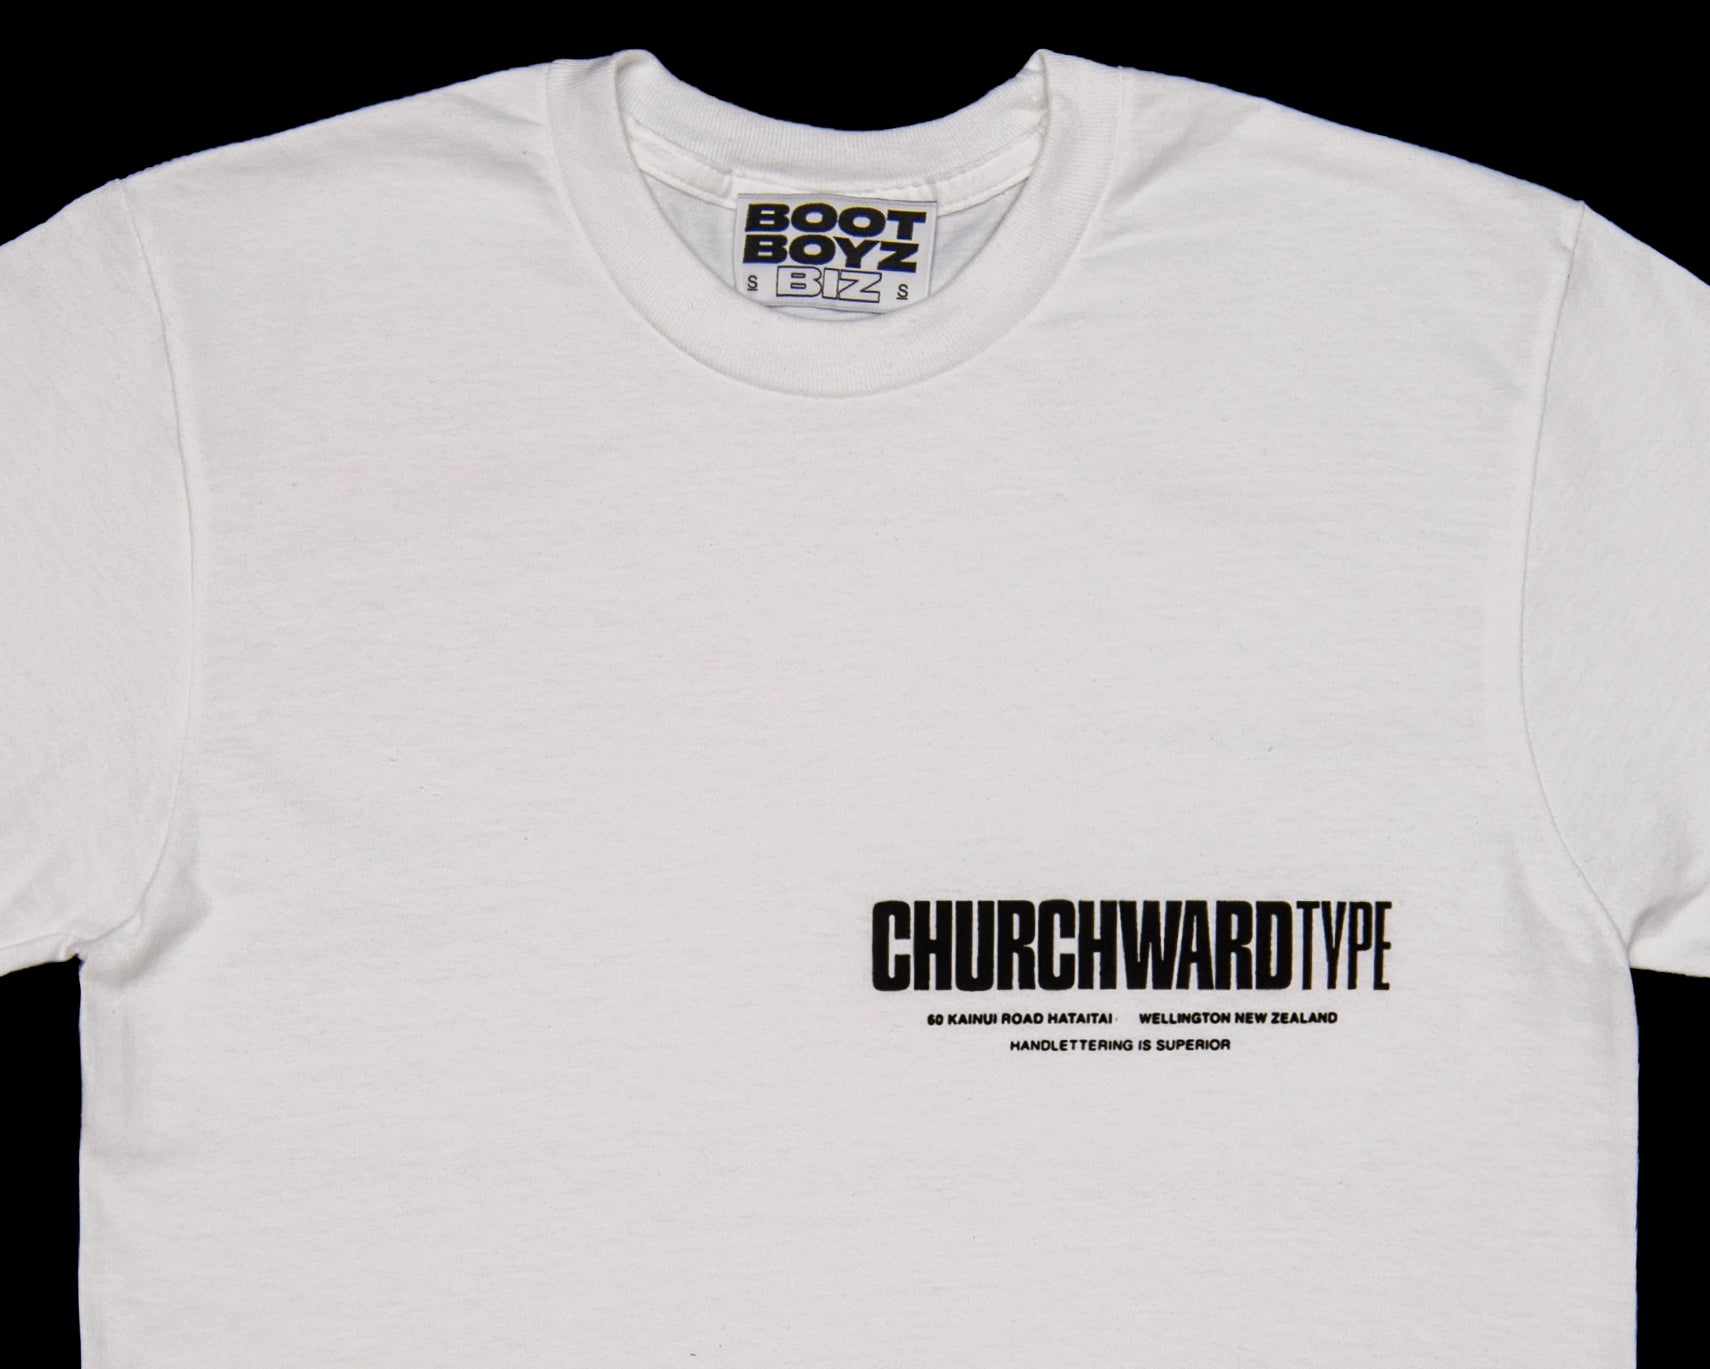 Churchward Type